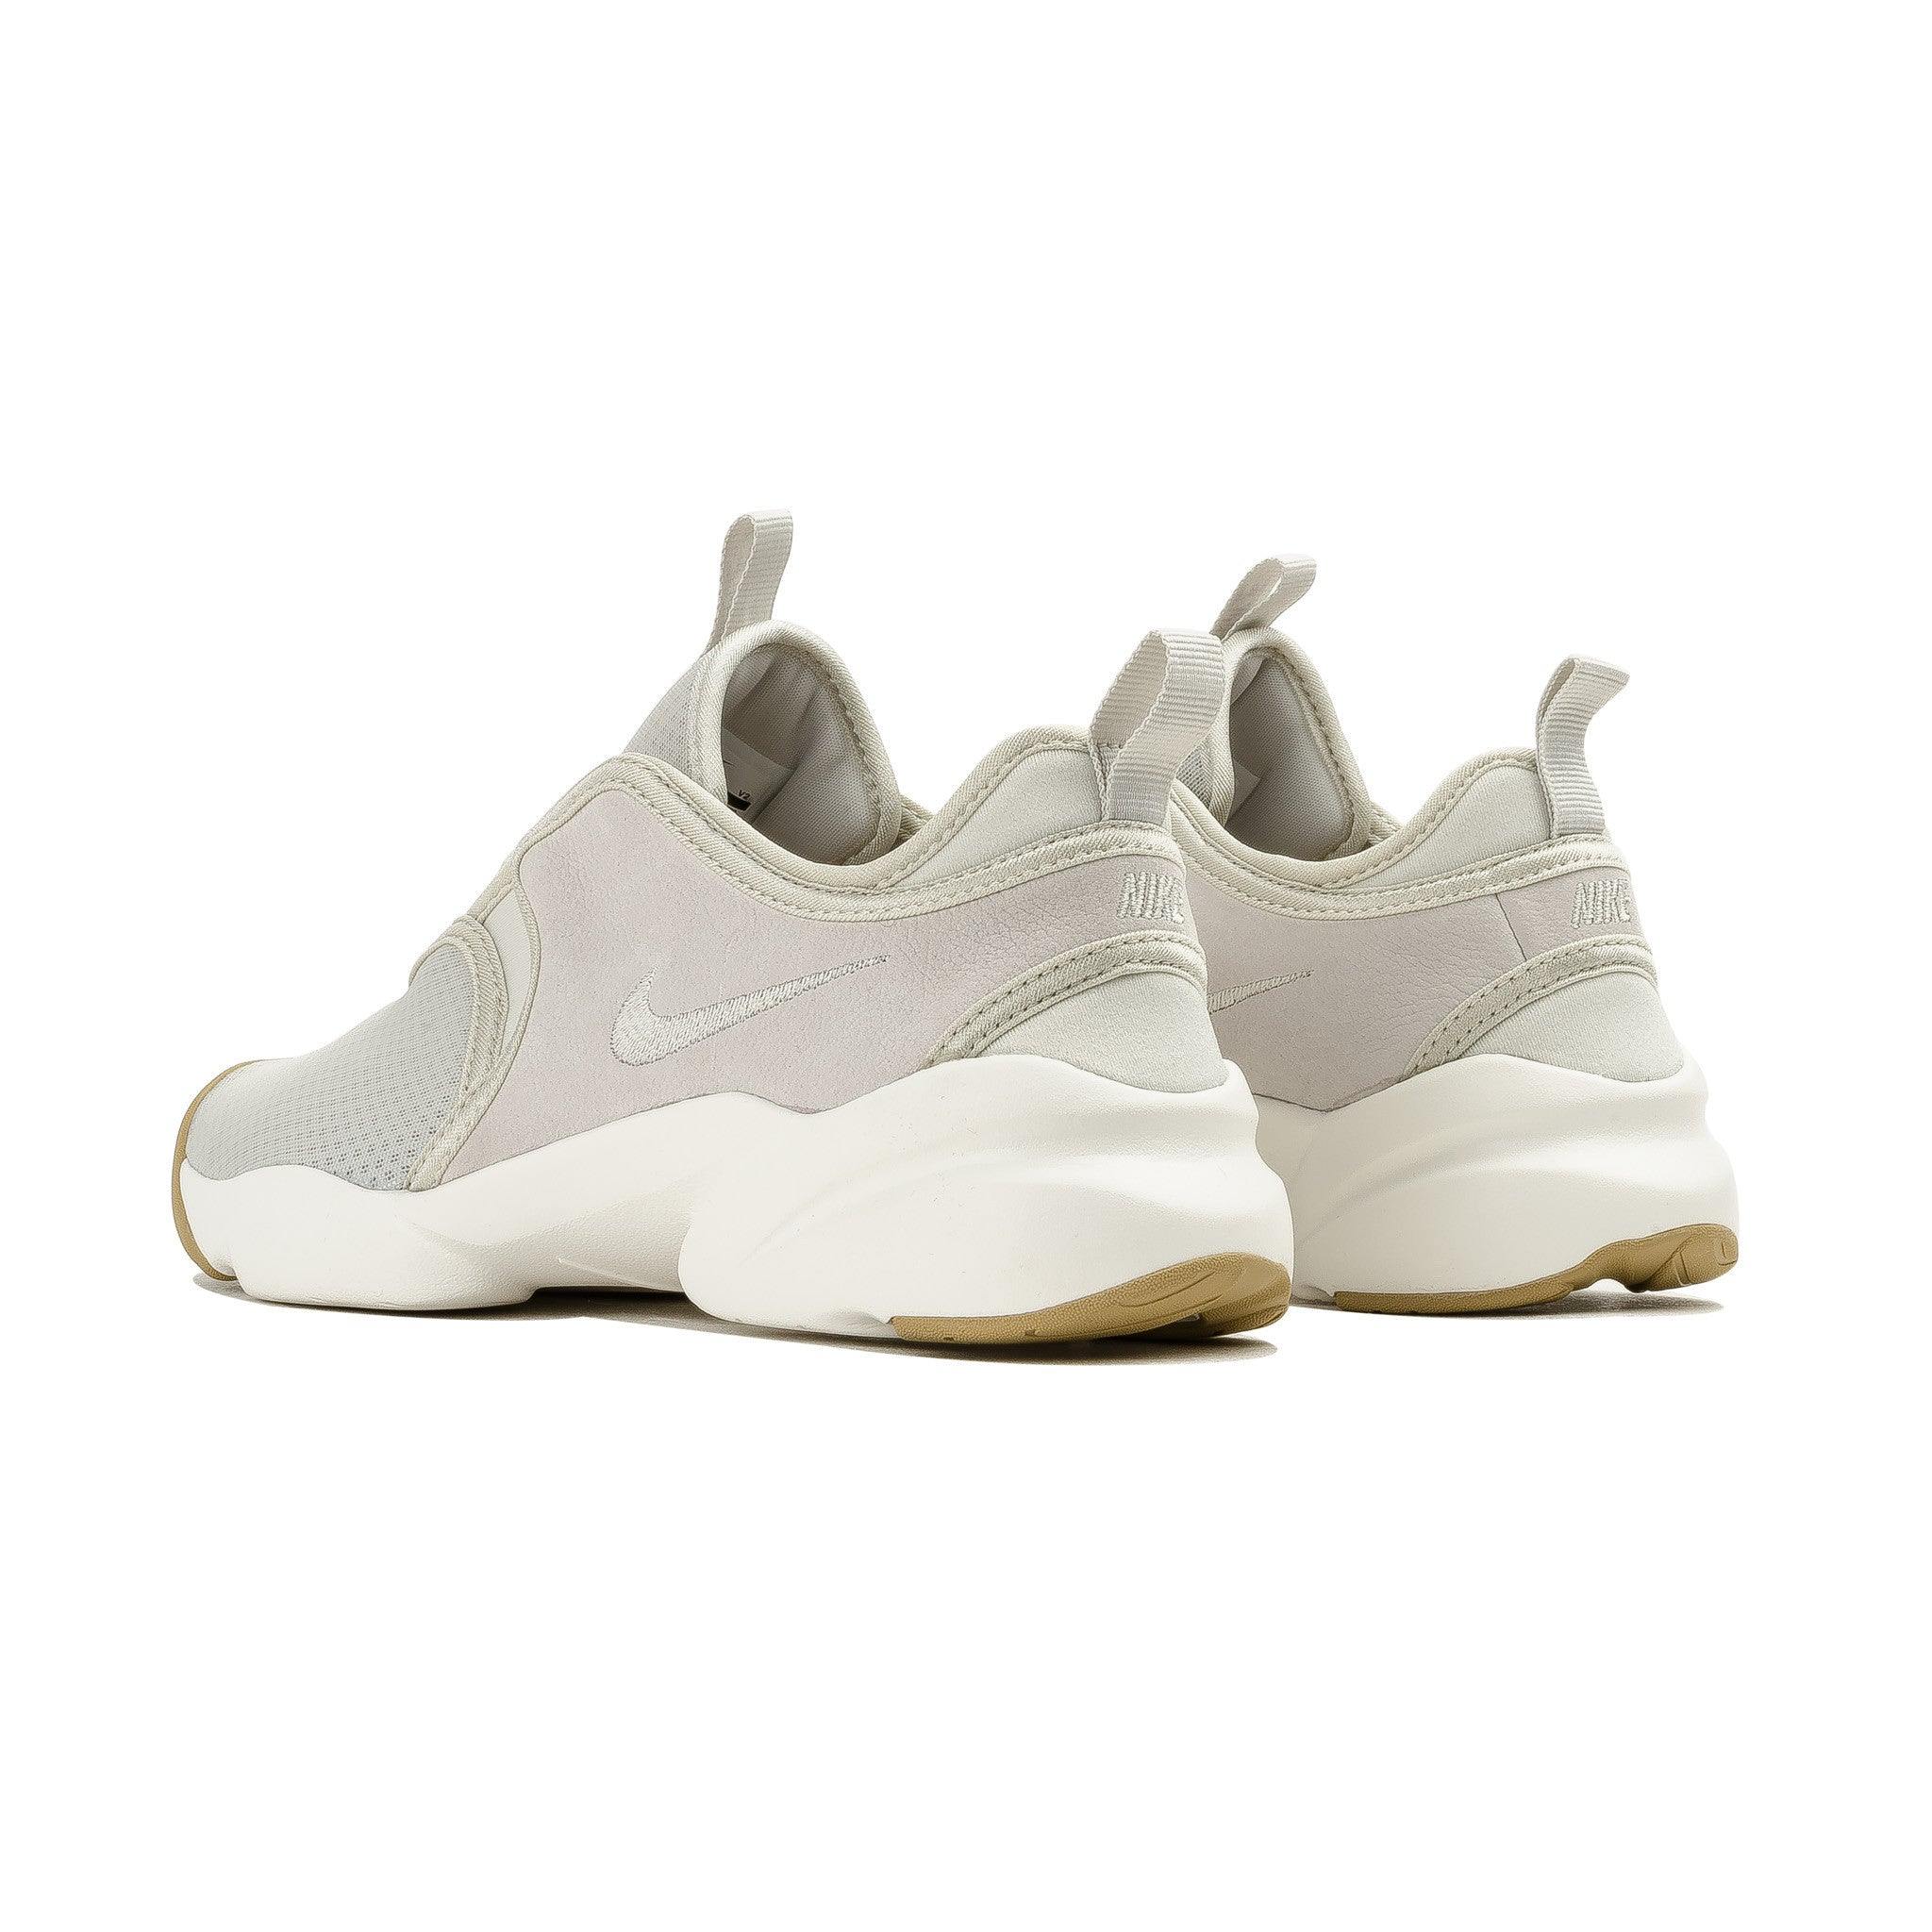 W Nike Loden Pinnacle 926586-002 Light Bone